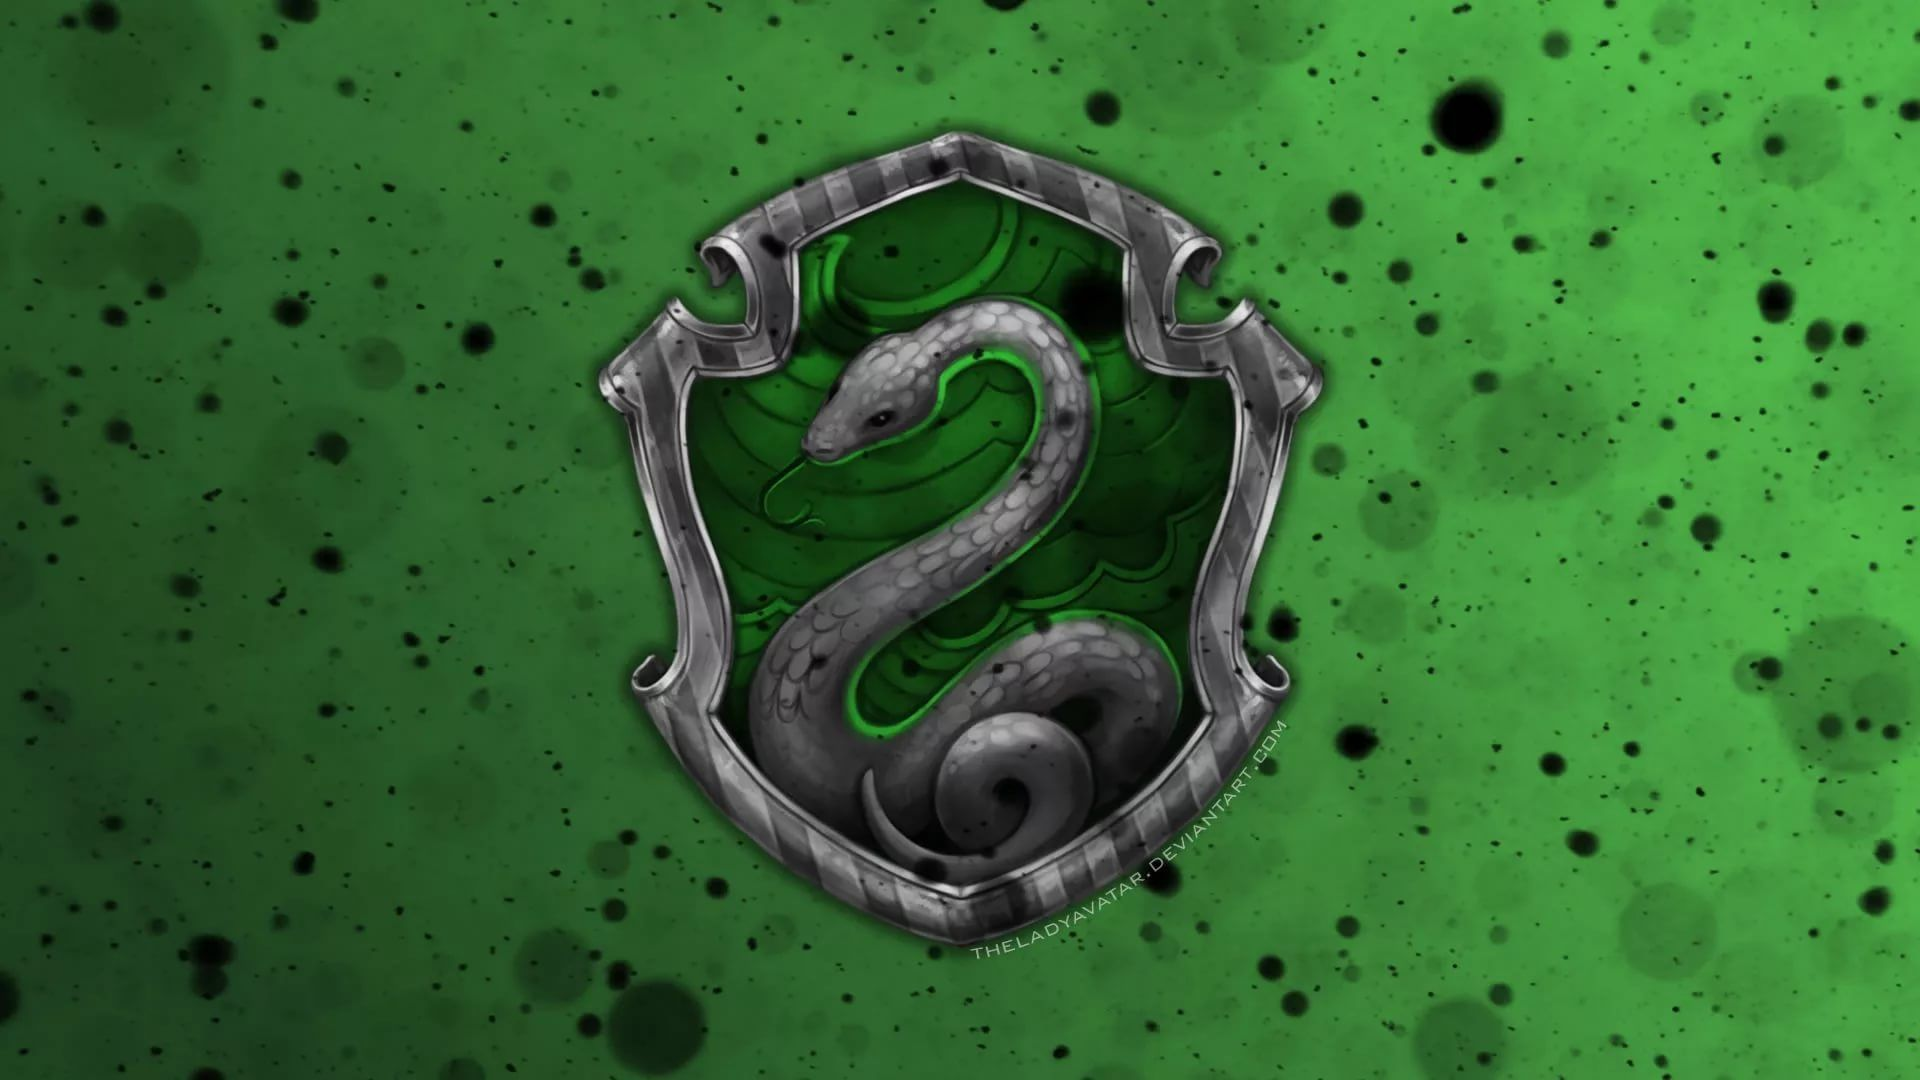 Slytherin Hd Wallpapers 22 Wallpaperboat